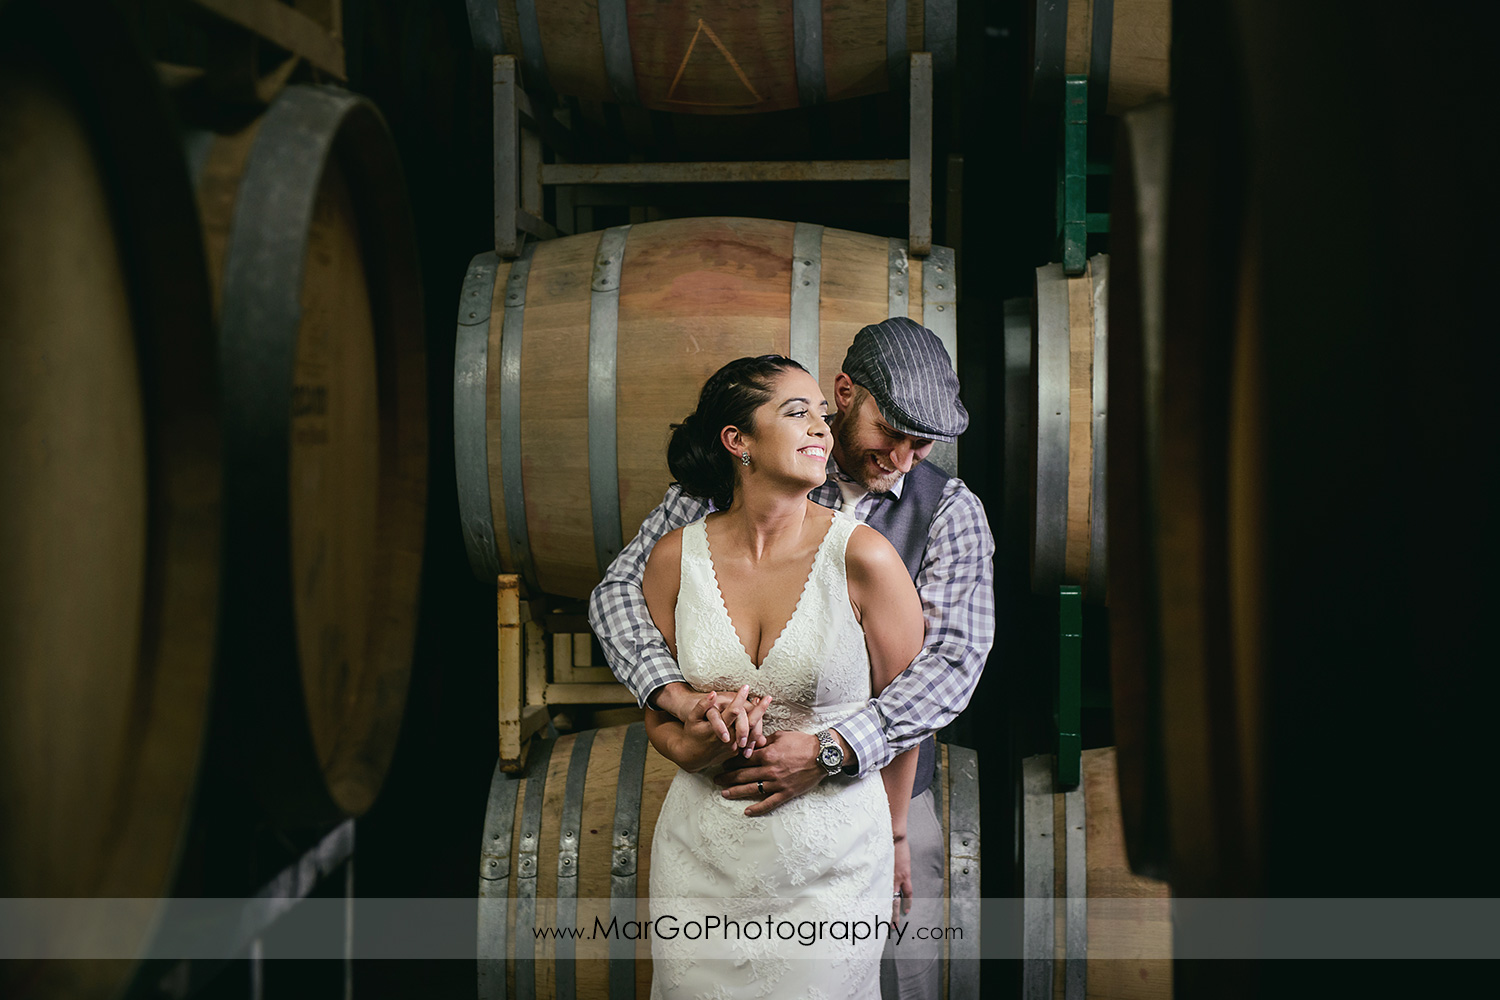 bride & groom in barrel room at Picchetti Winery in Cupertino